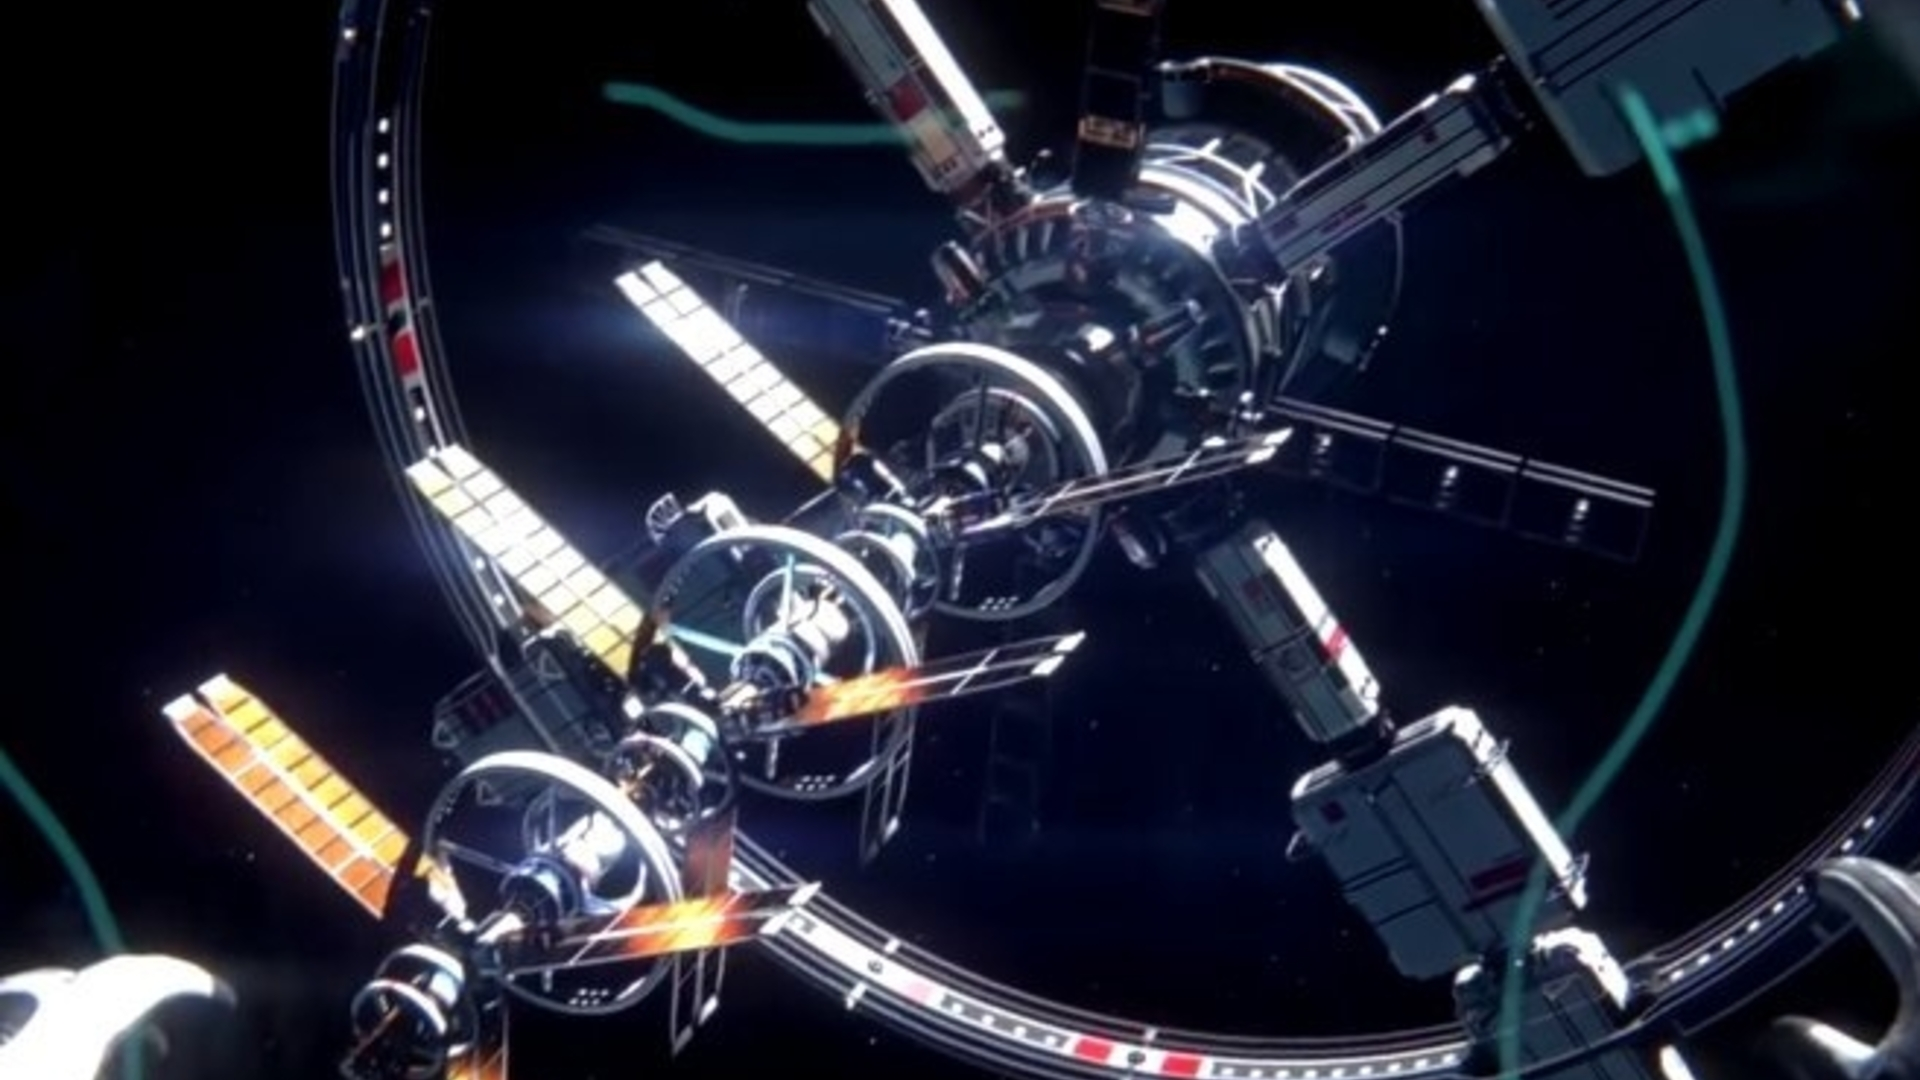 Space survival sim Adr1ft lands in September on PC, PS4 and Xbox One